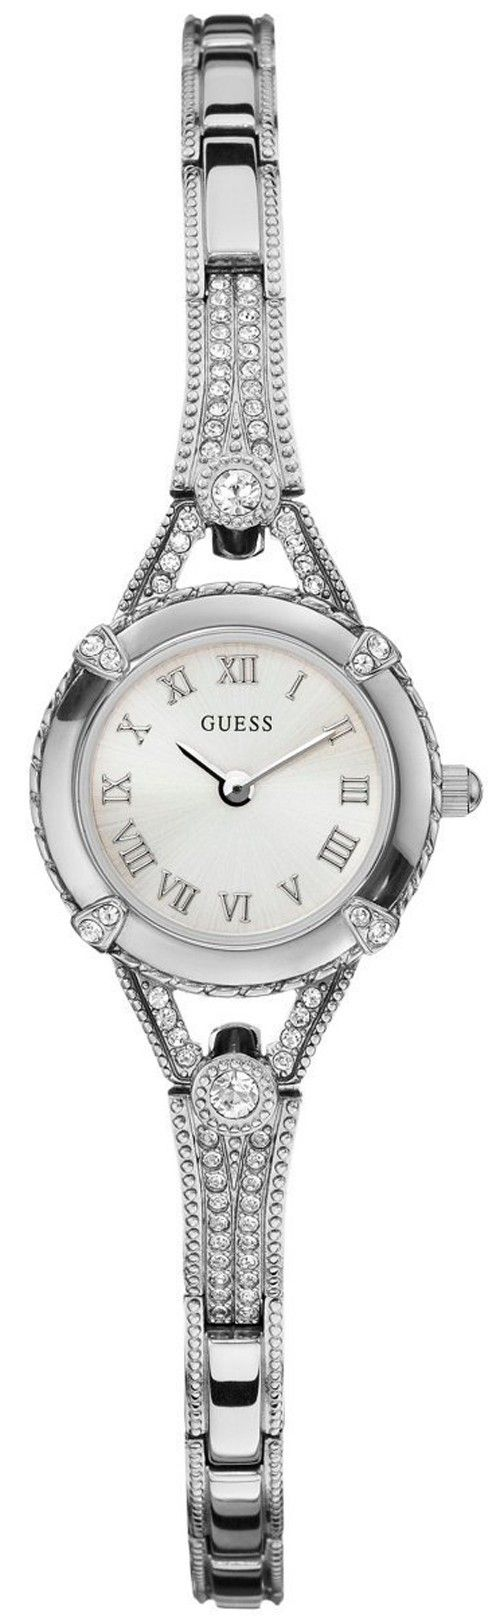 #Guess #Watch , GUESS Women's Silver-Tone Petite Crystal Watch...$67.90